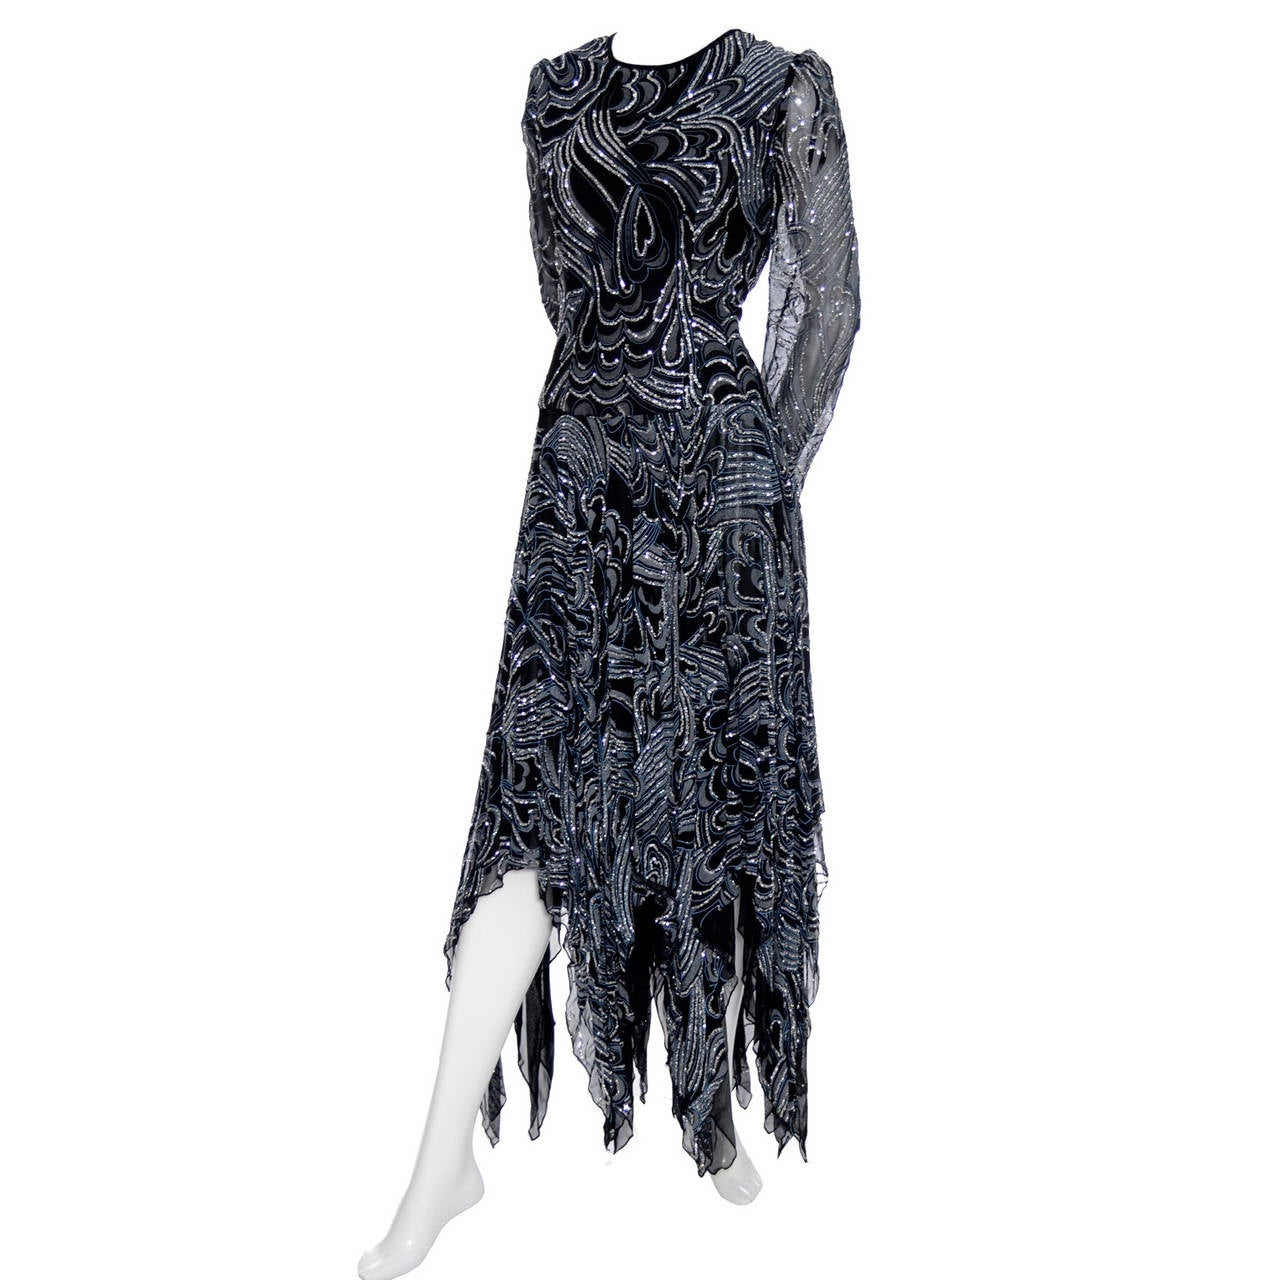 Terence Nolder Vintage Dress With Handkerchief Hem in Metallic Sparkle Fabric For Sale